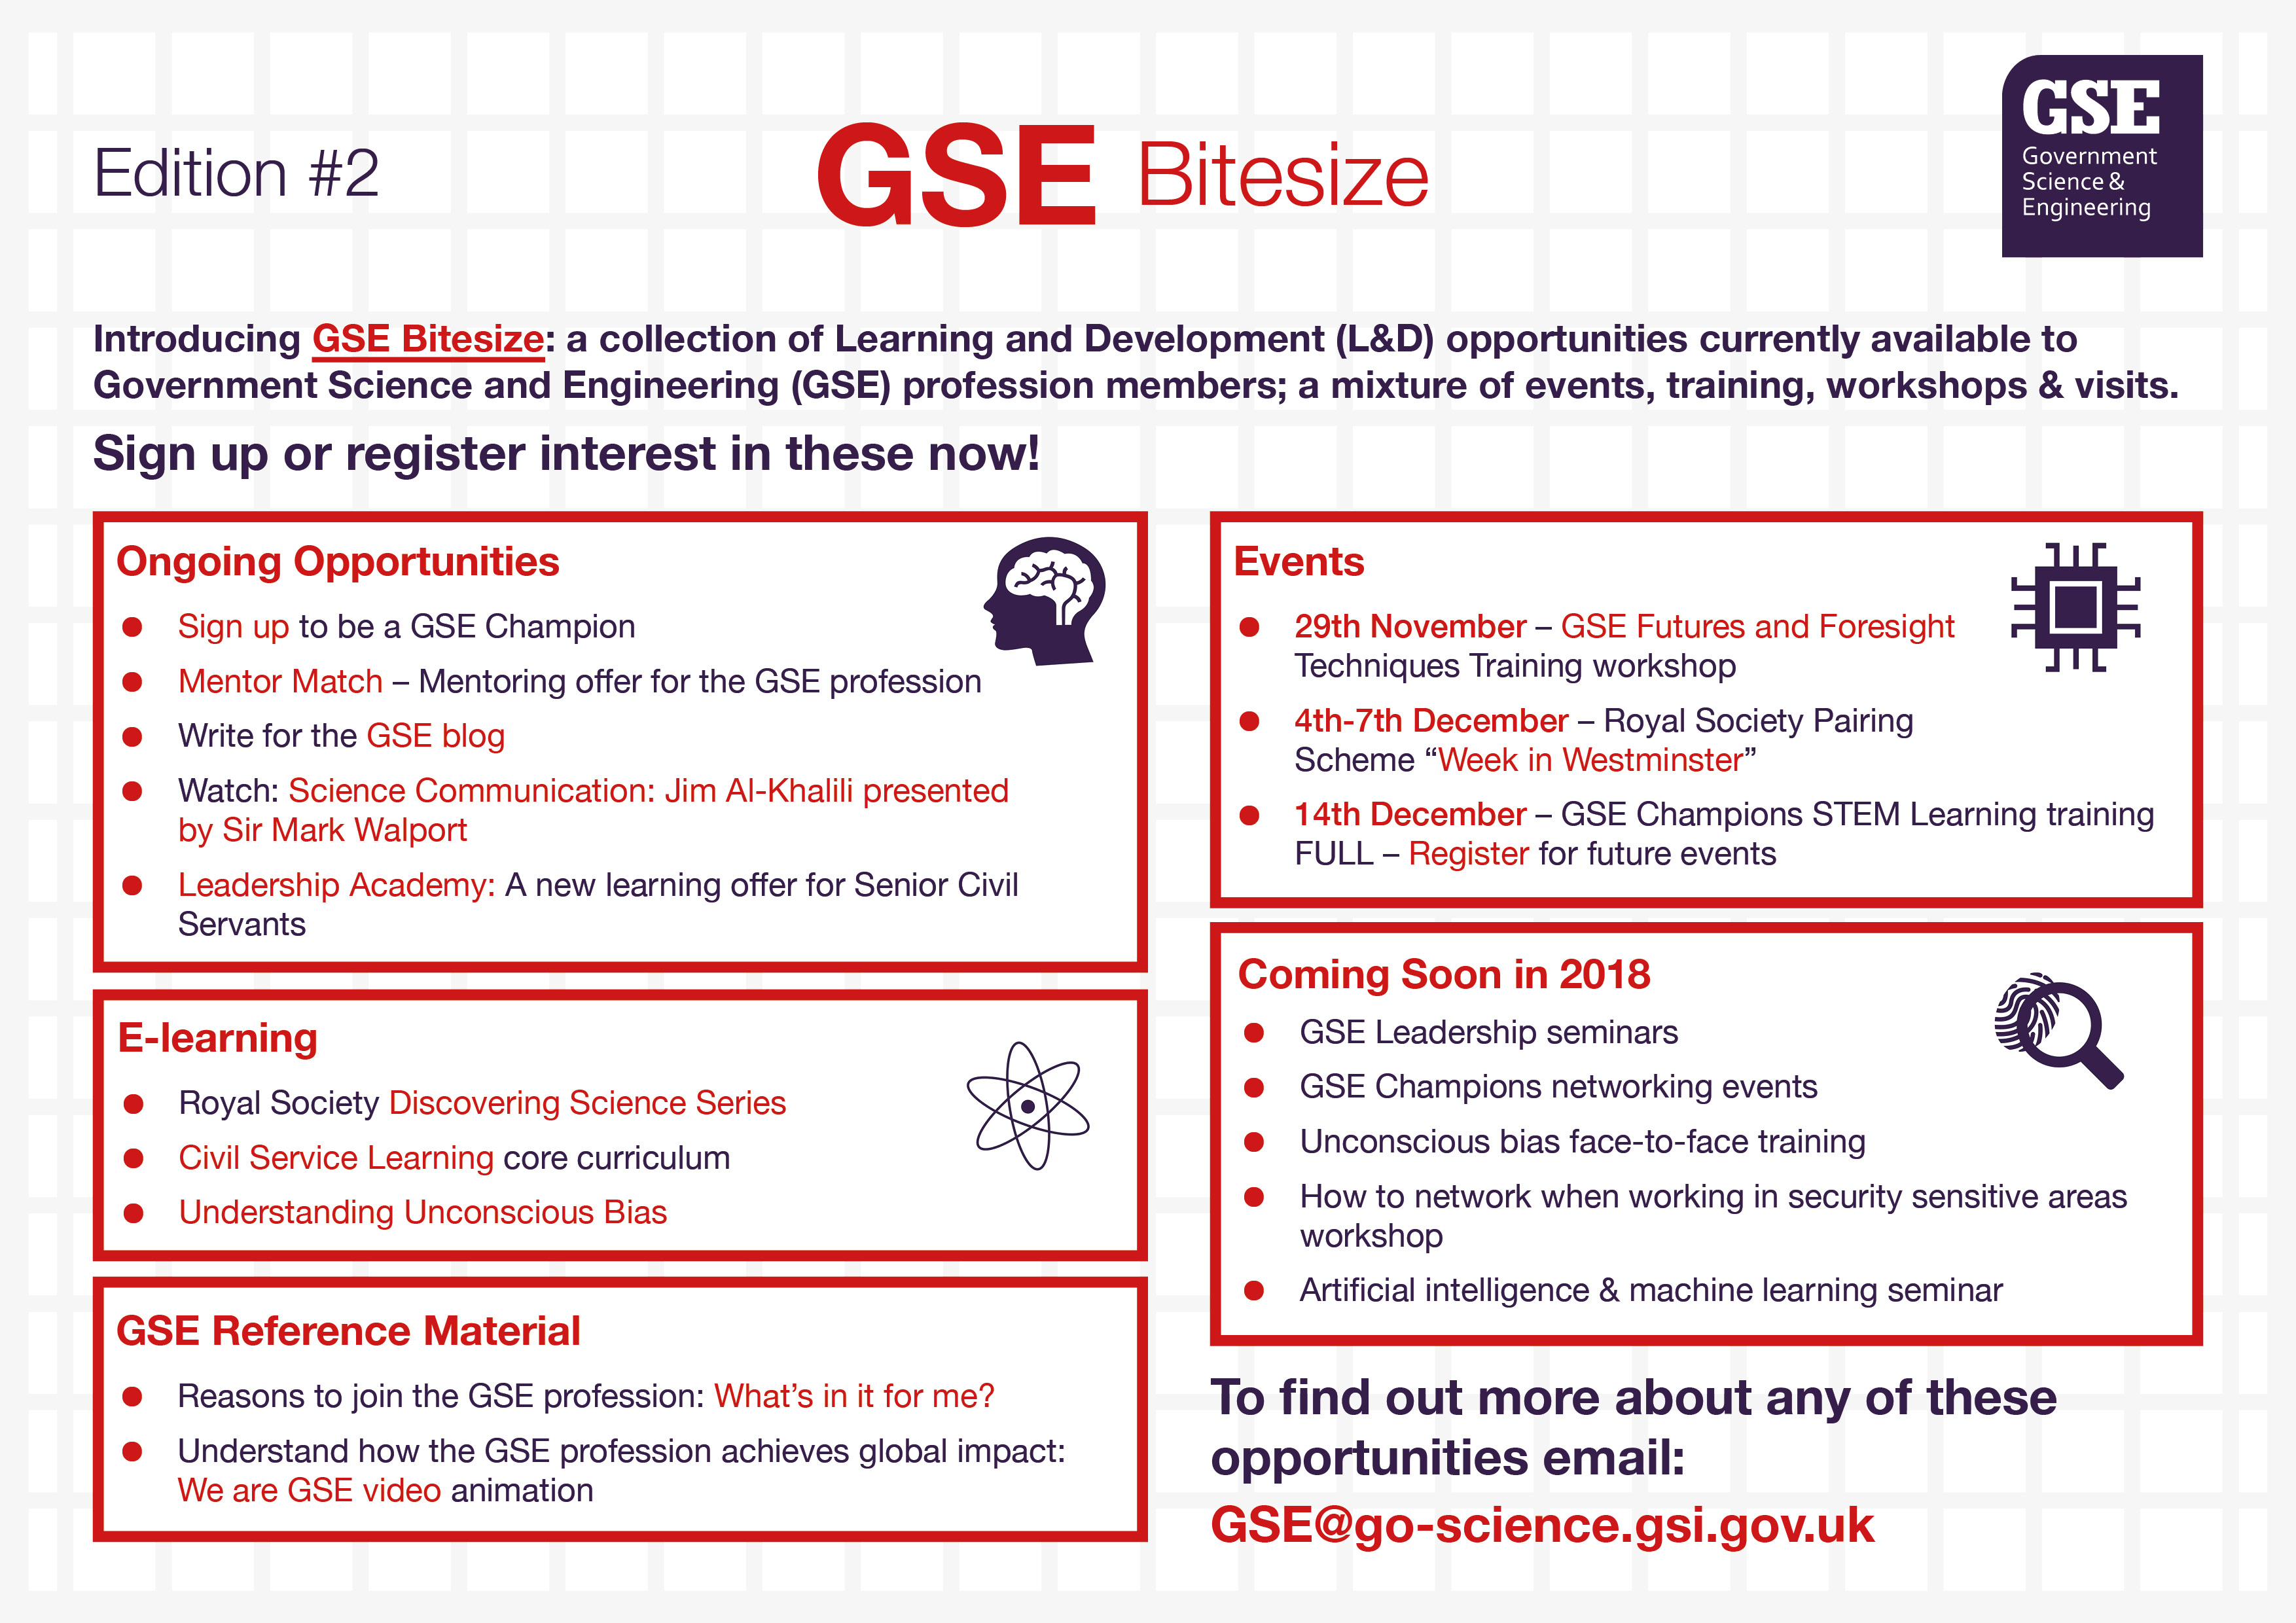 A collection of GSE opportunities